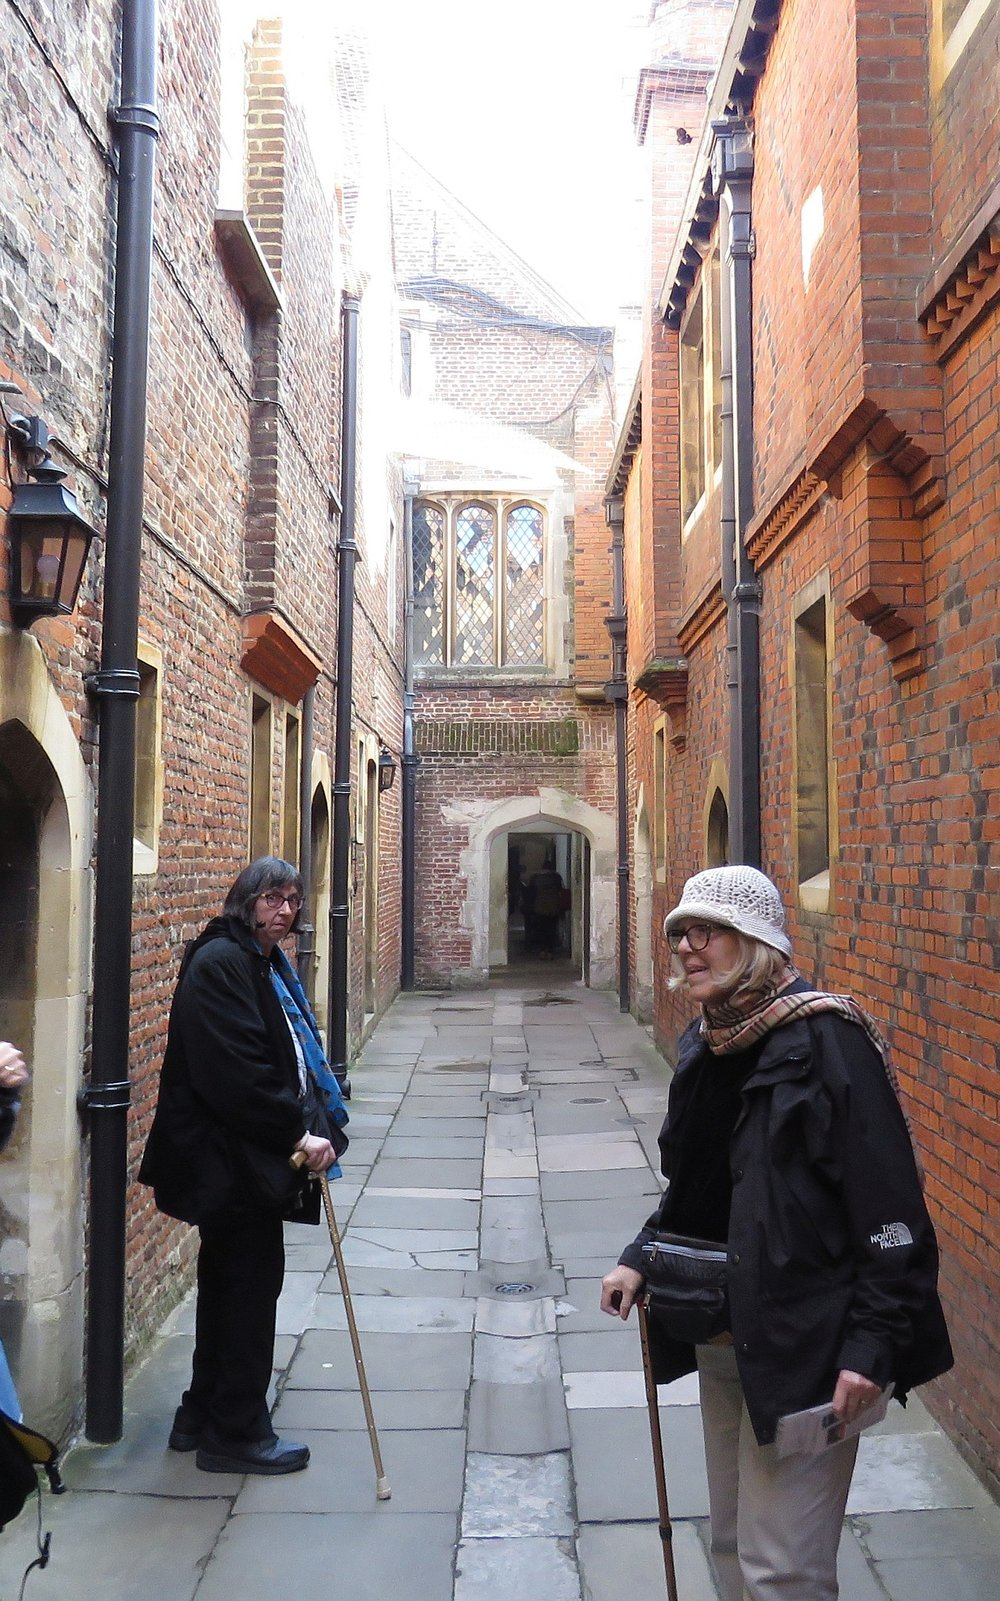 Down the alley outside the enormous kitchens that served the palace.